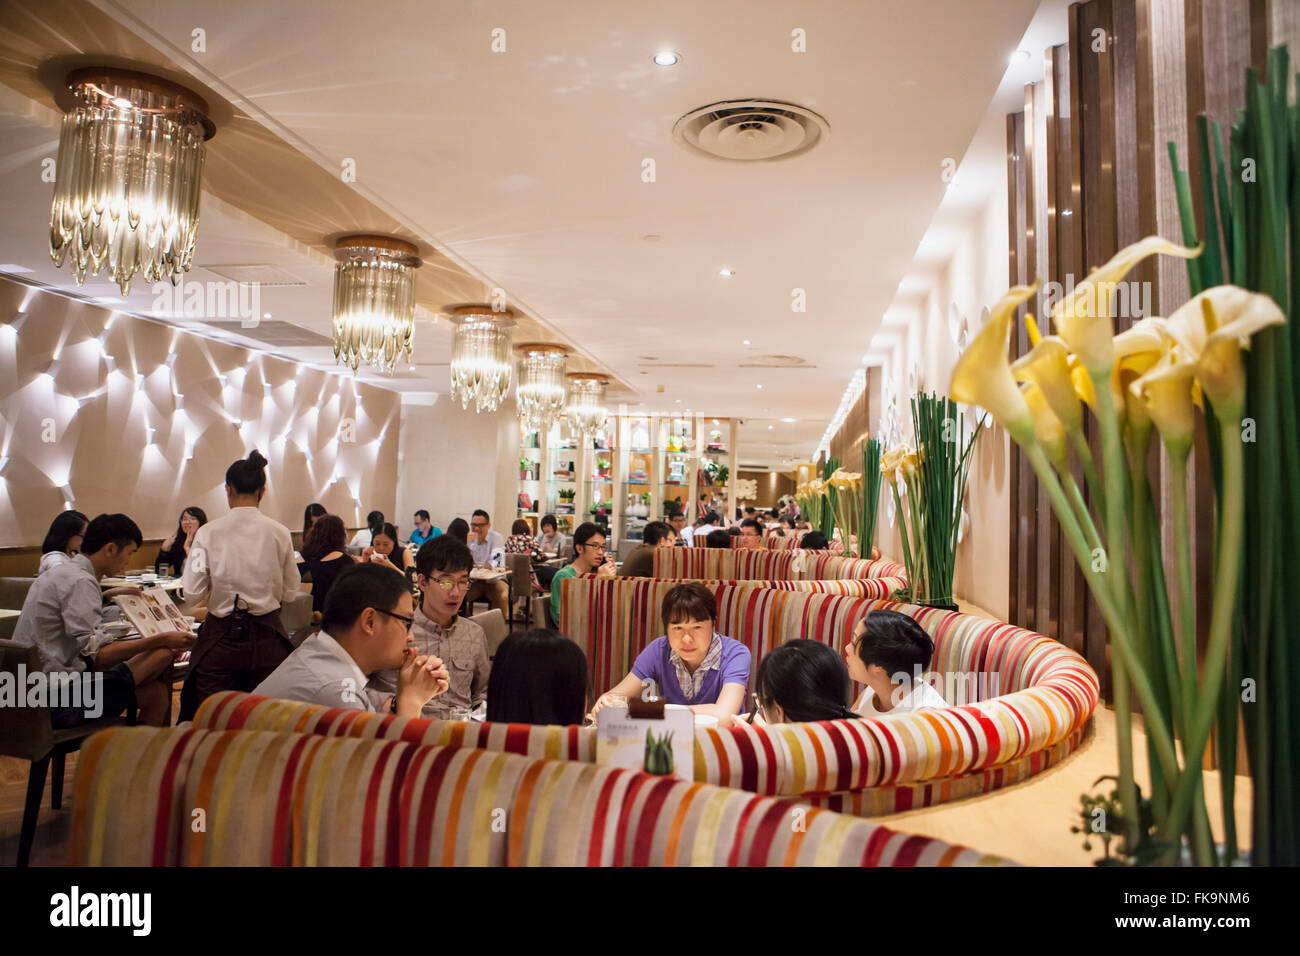 shoppers dine at a restaurant in the Tee Mall, Guangzhou, China - Stock Image